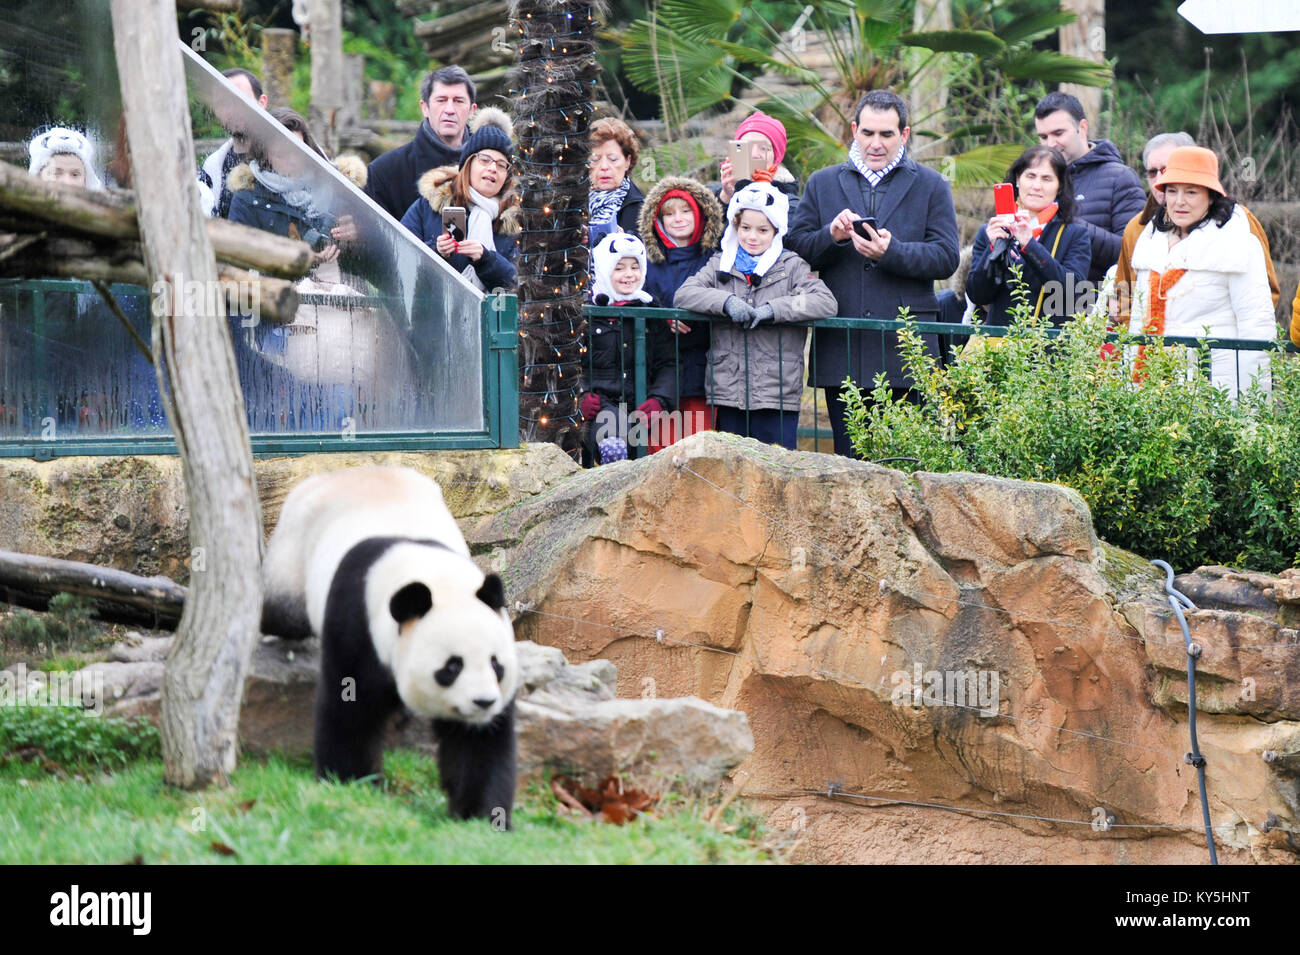 Saint Aignan. 13th Jan, 2018. Visitors watch the male giant panda 'Yuan Zi', the father of the panda baby - Stock Image